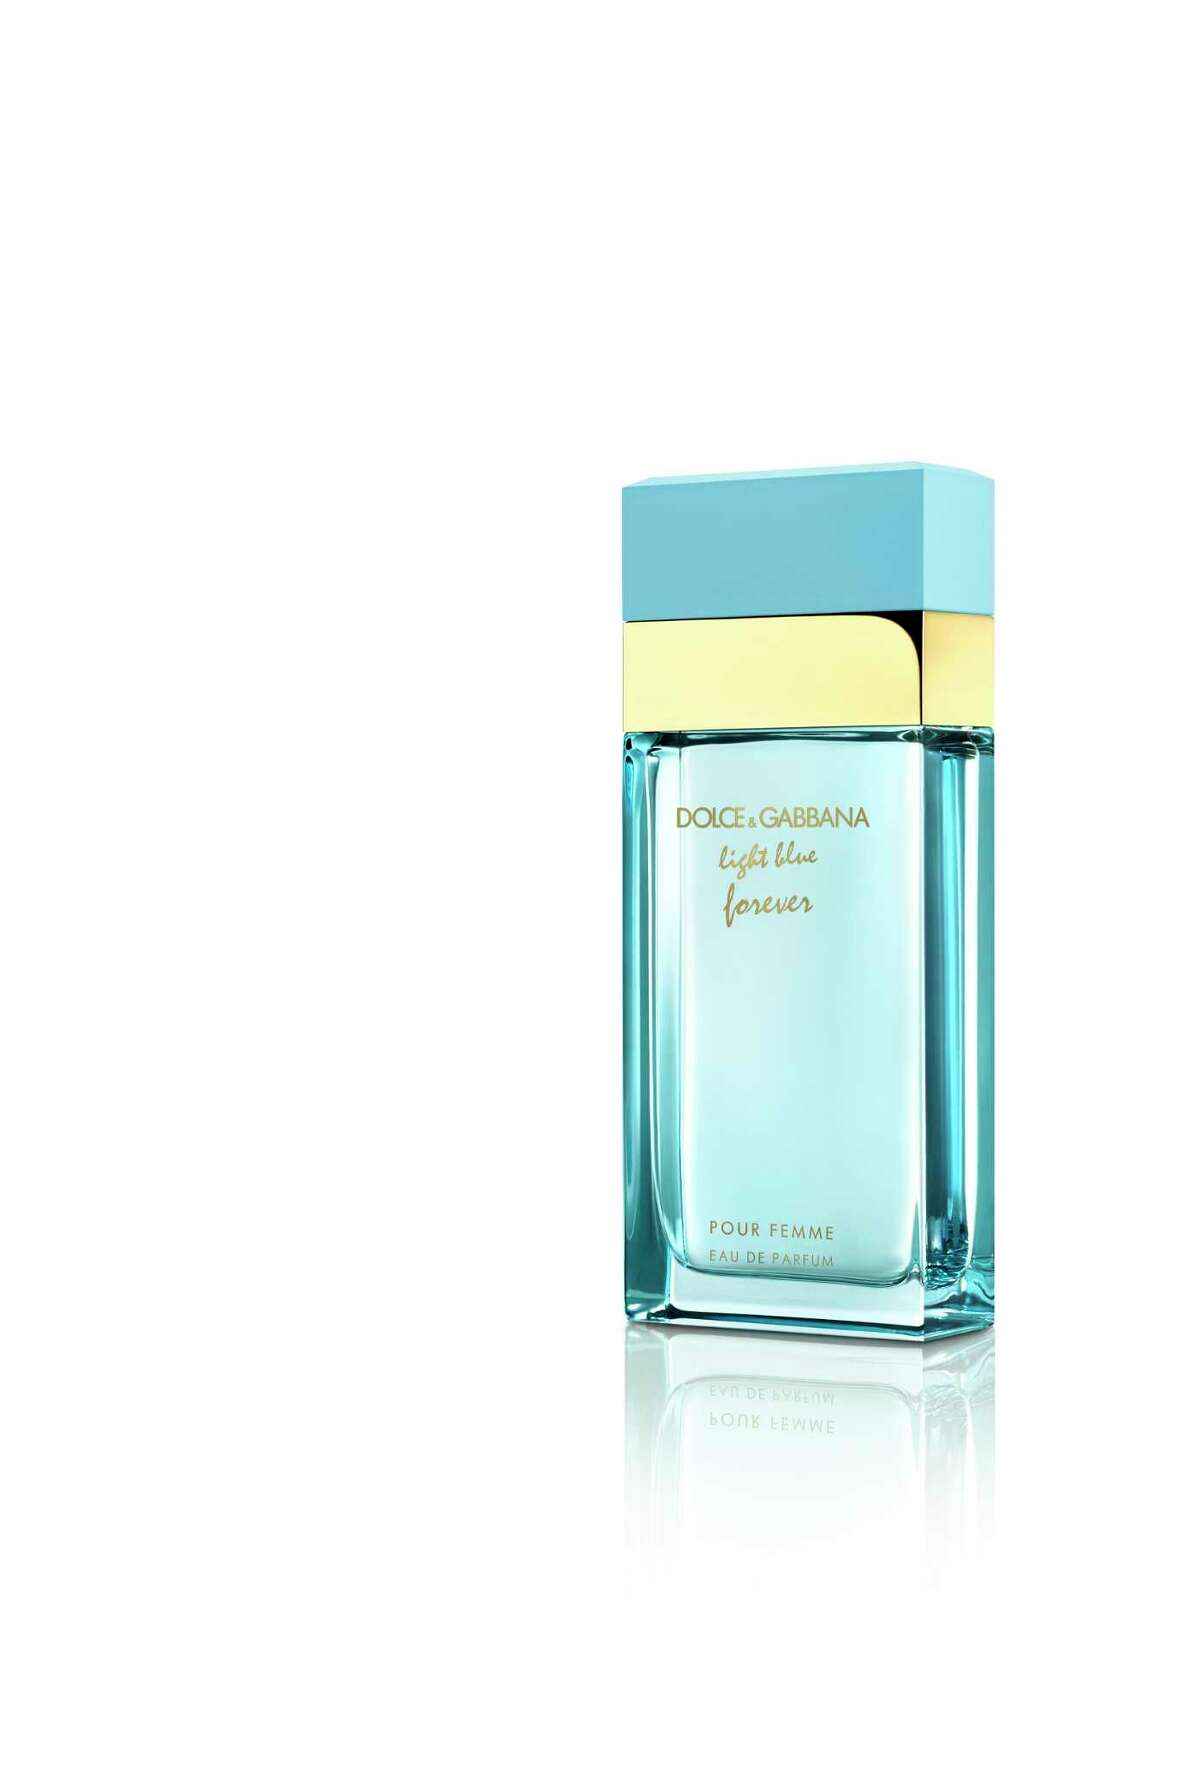 Dolce & Gabbana Light Blue Forever Pour Femme blends Granny Smith apple and Calabrian lemon with white flowers, orange blossom, cedar, cashmere and white musk.